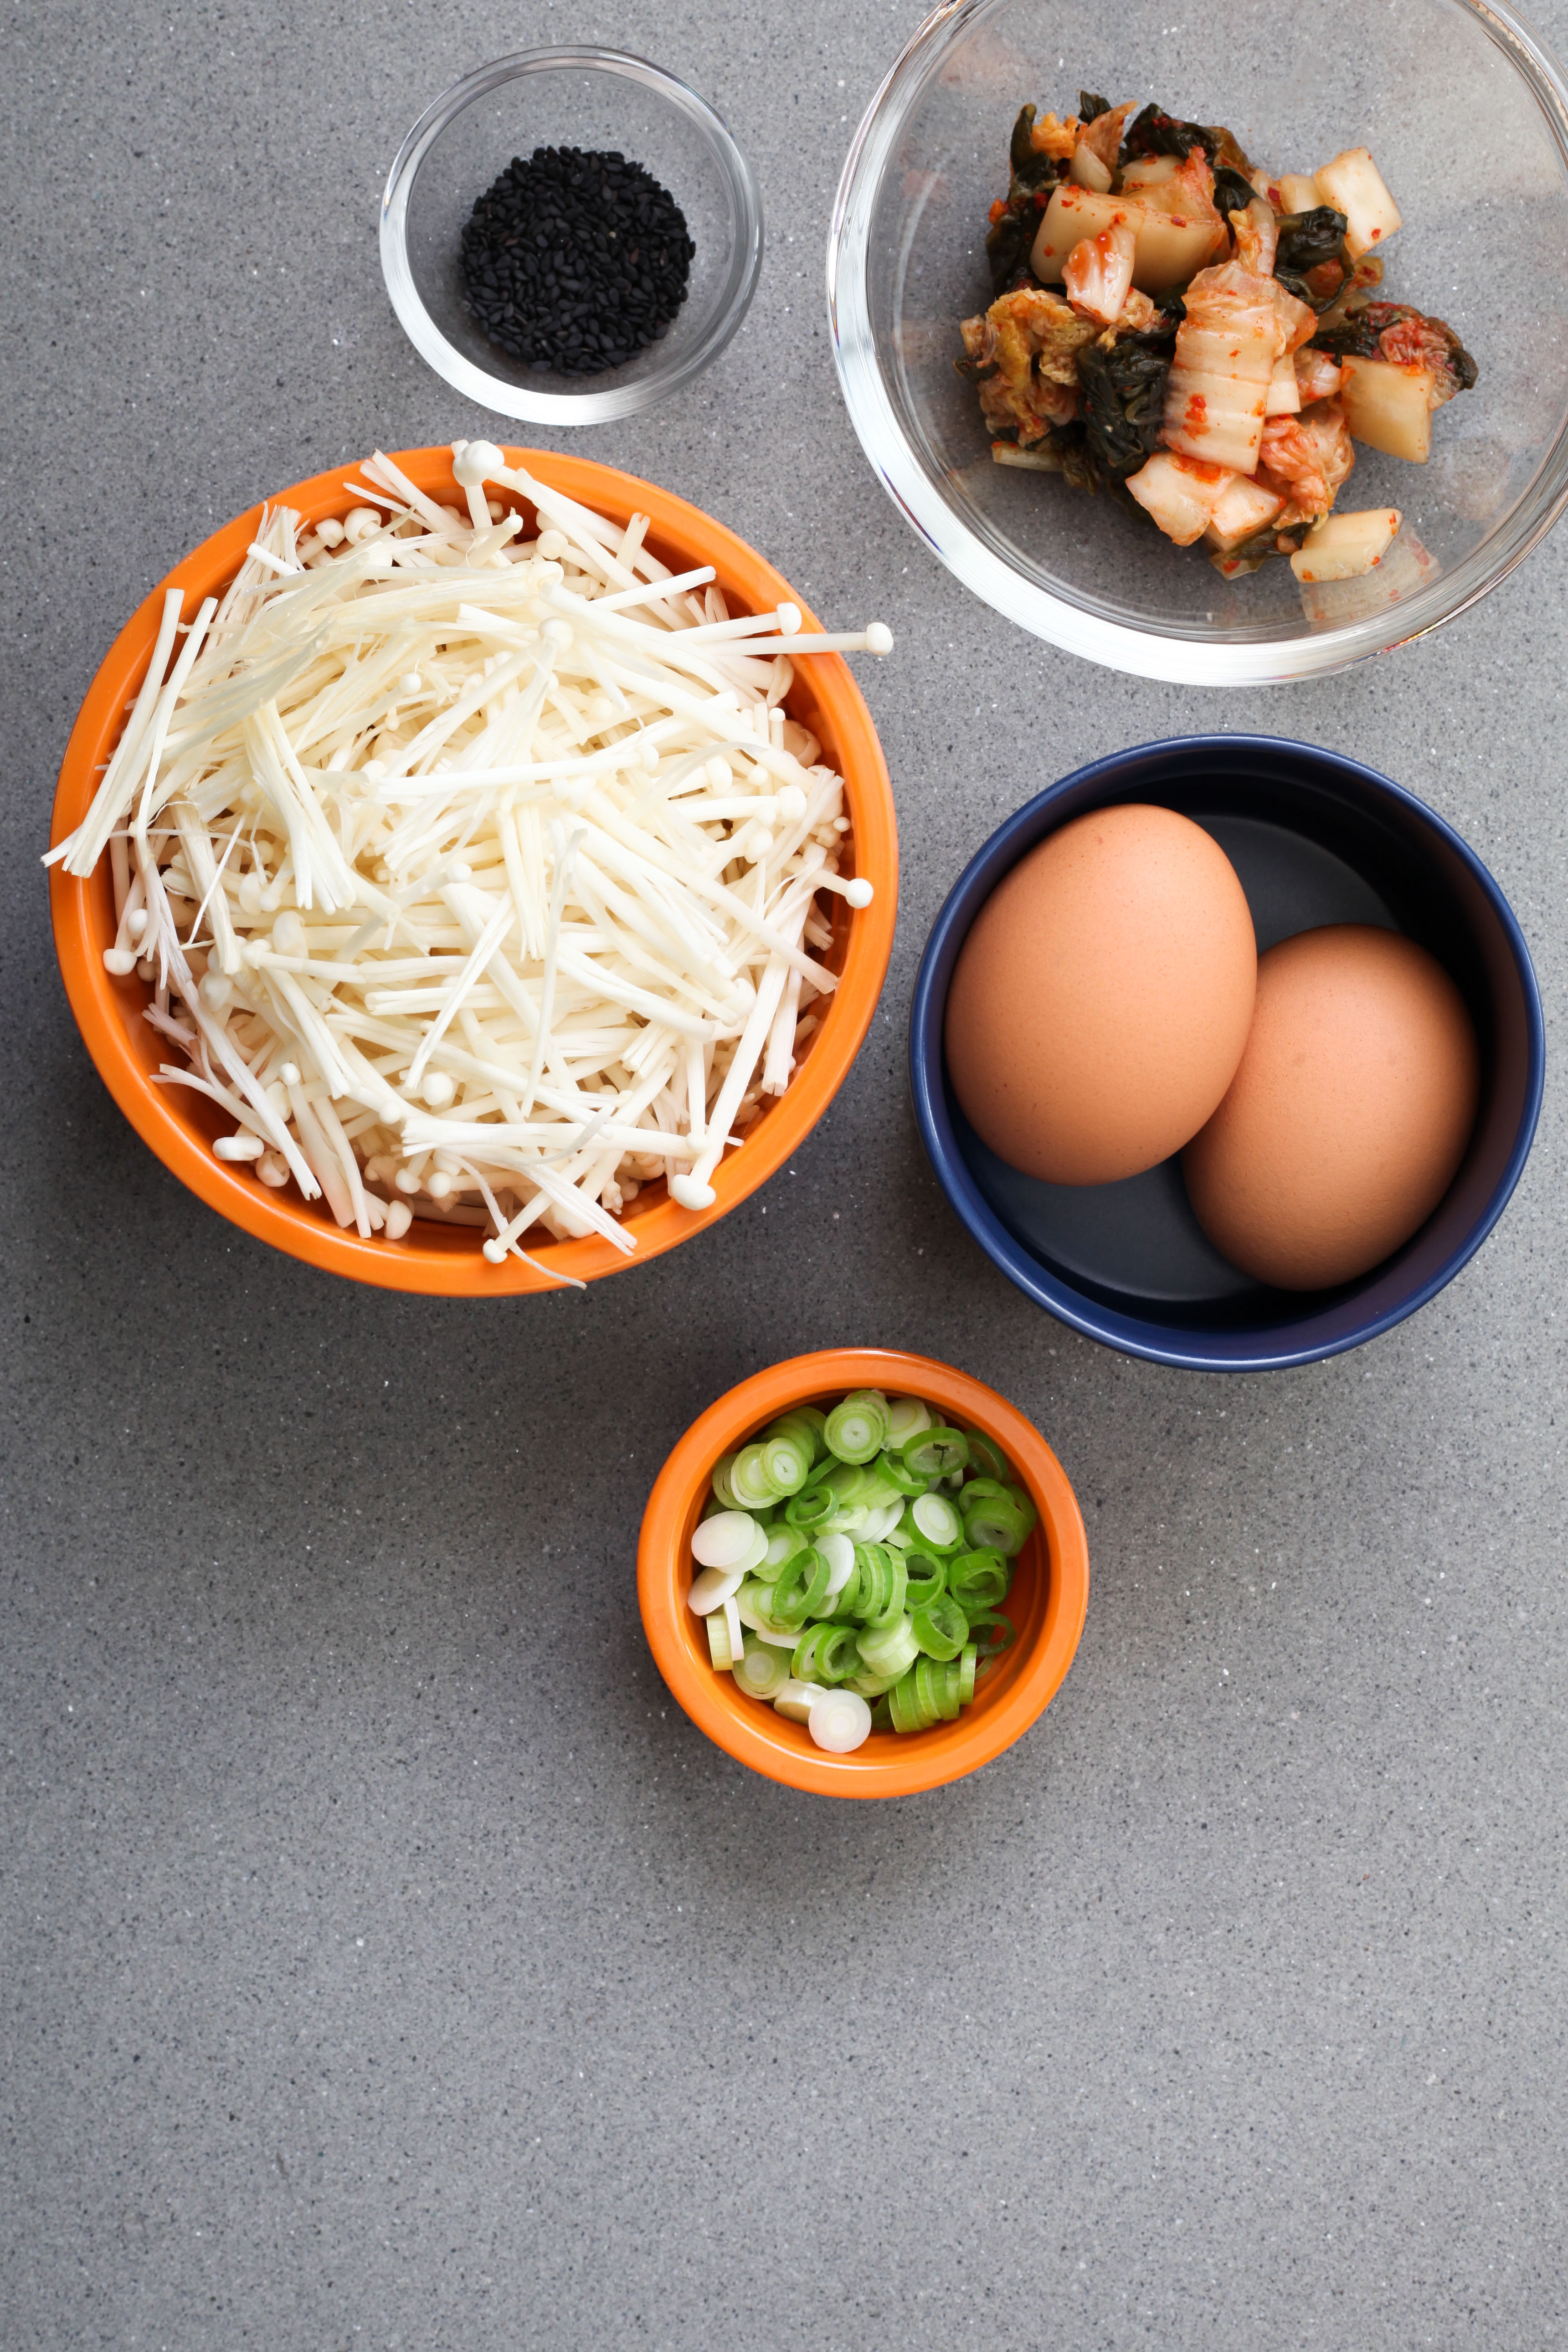 Enoki Mushrooms and Kimchi Bowl Ingredients